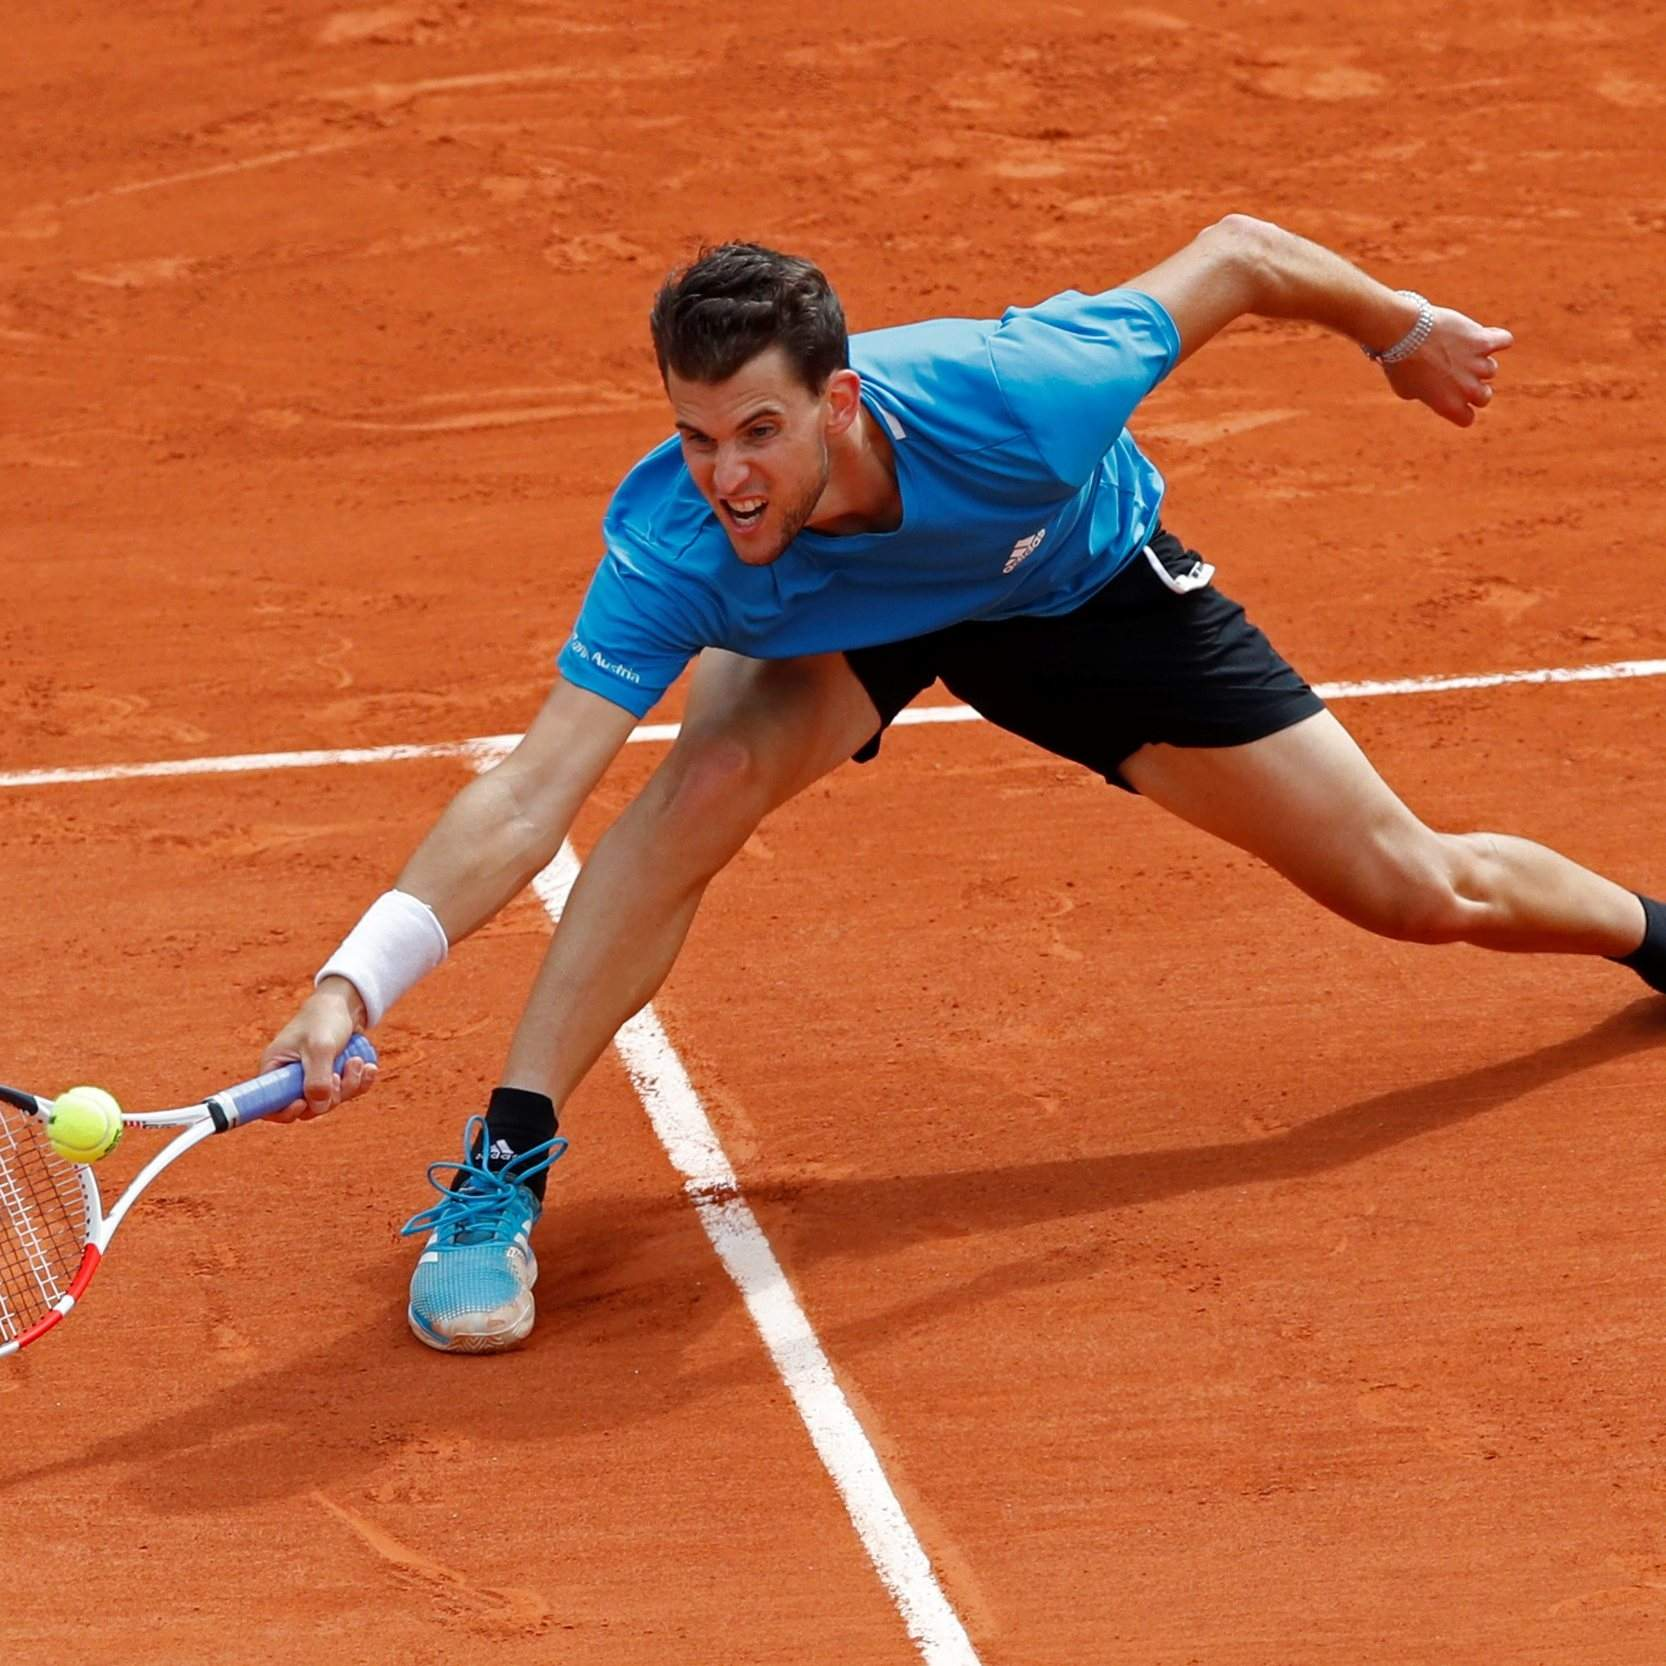 Rafael Nadal Conquers Clay Wins 12th French Open